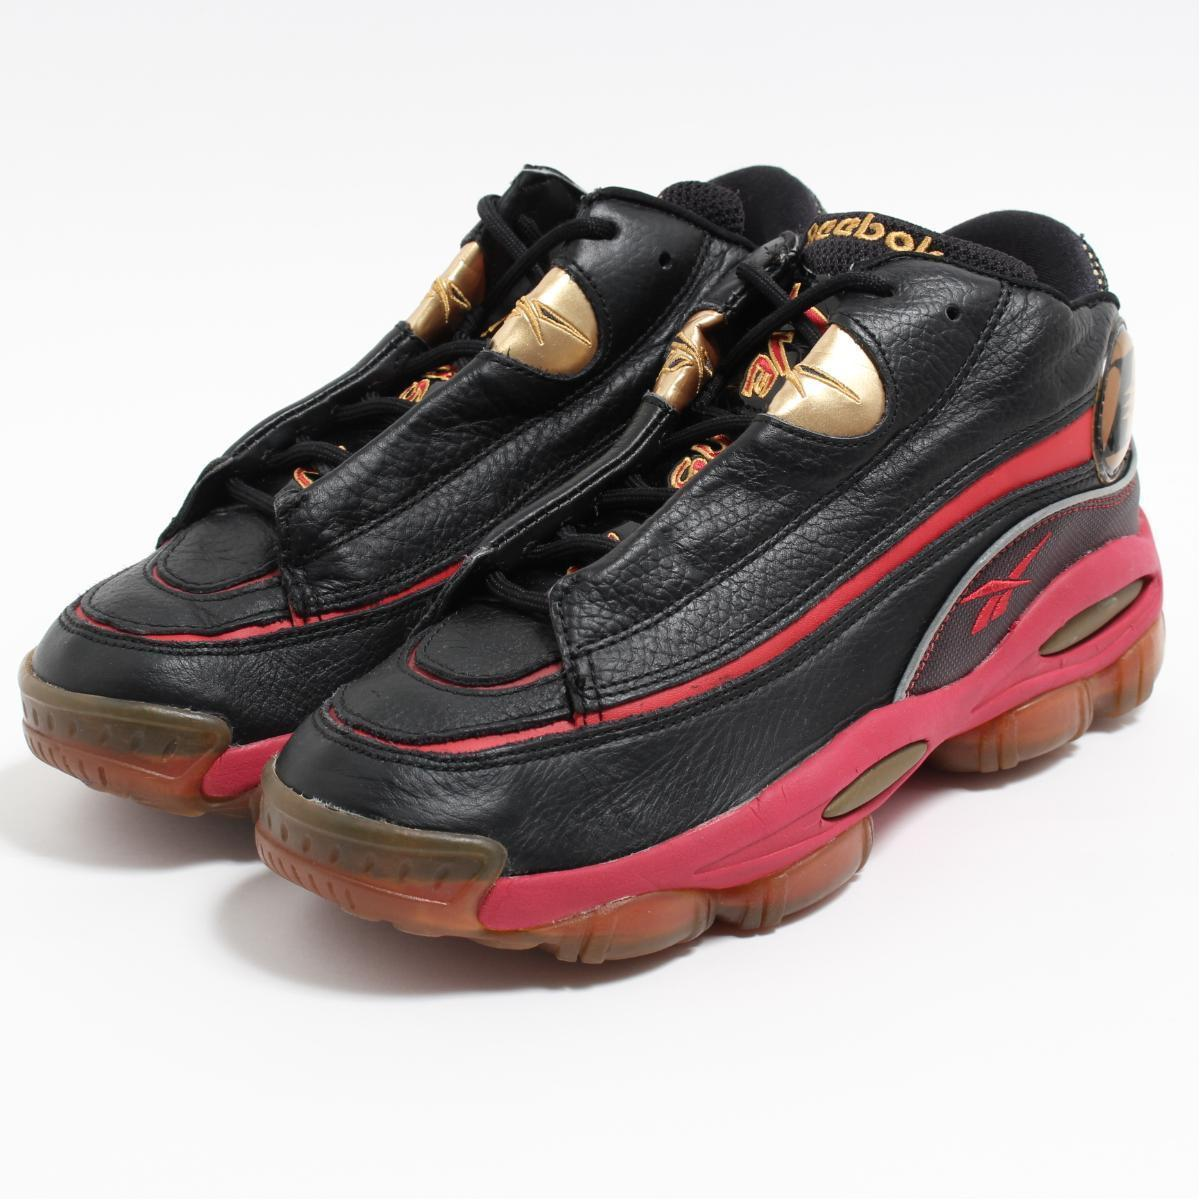 リーボック Reebok THE ANSWER 1 DMX 10 Allen Iverson スニーカー US9 メンズ27.0cm /boo6743 【中古】 【190318】